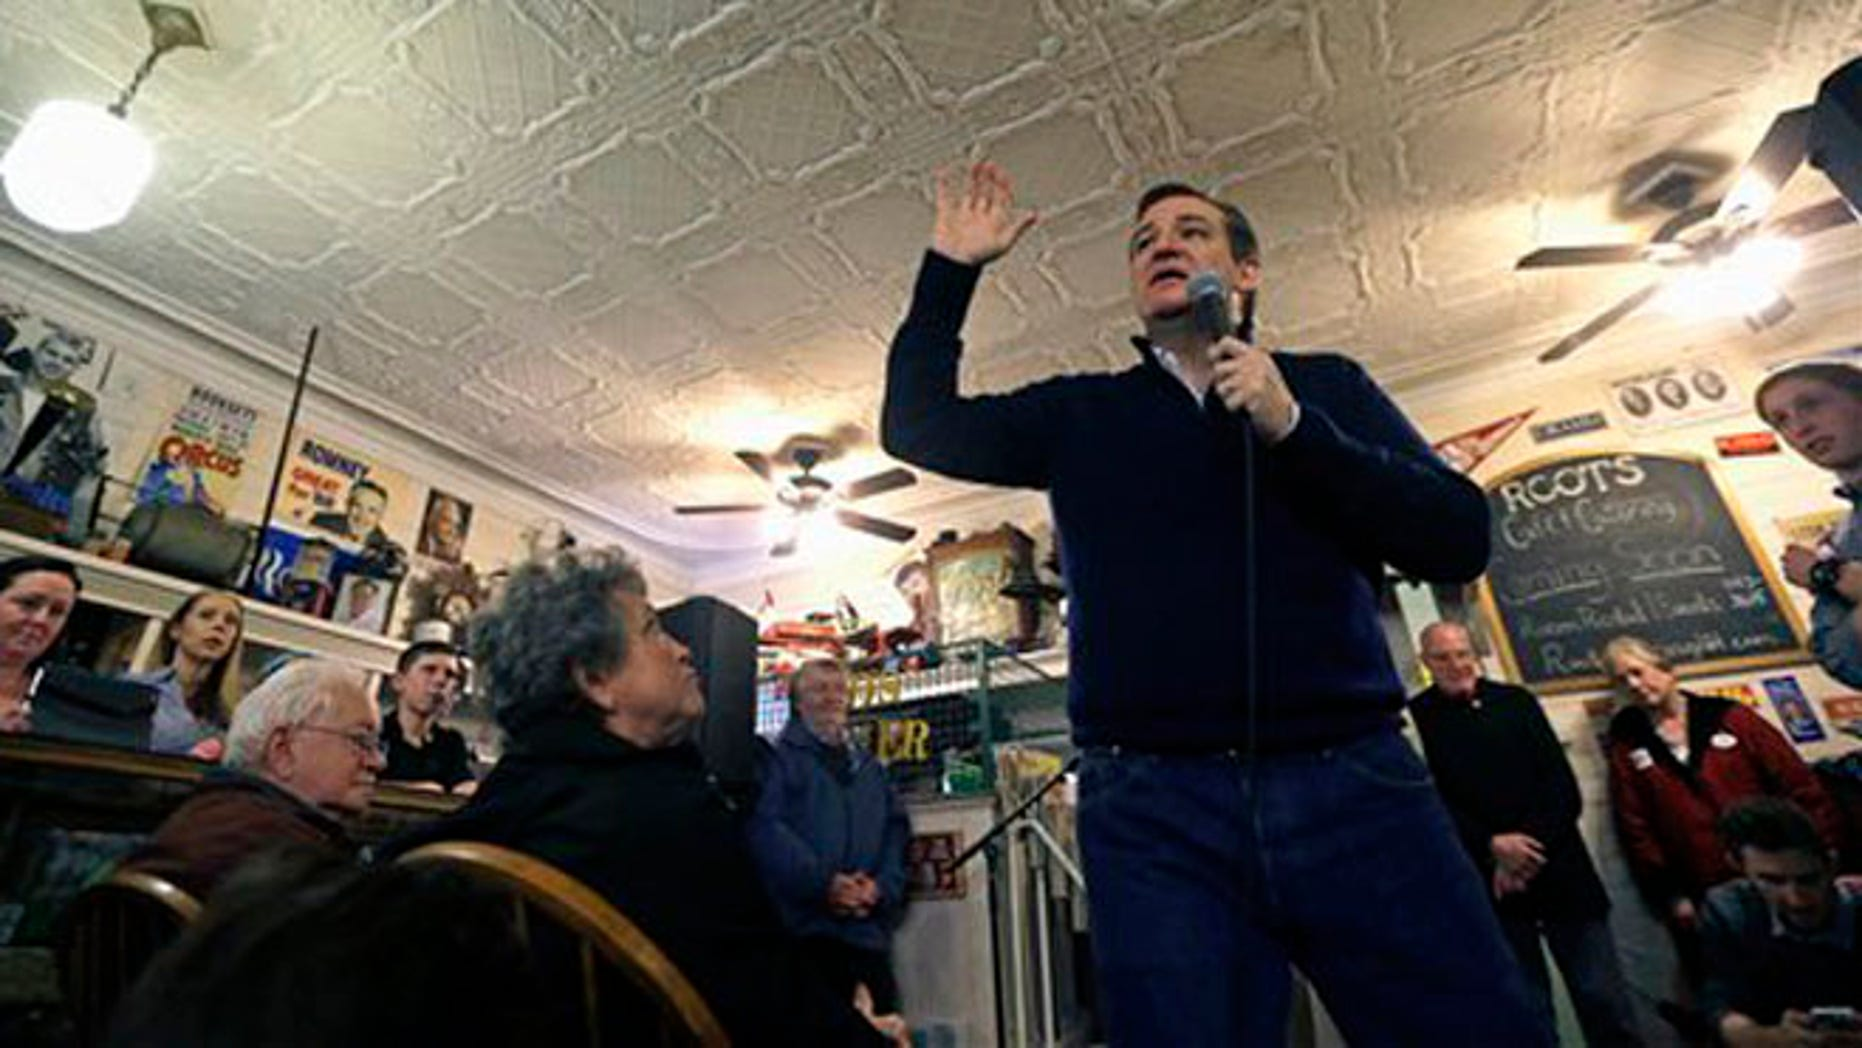 Republican presidential candidate, Sen. Ted Cruz, R-Texas speaks Robie's Country Store during a campaign event, Wednesday, Feb. 3, 2016, in Hooksett, N.H. (AP Photo/Elise Amendola)